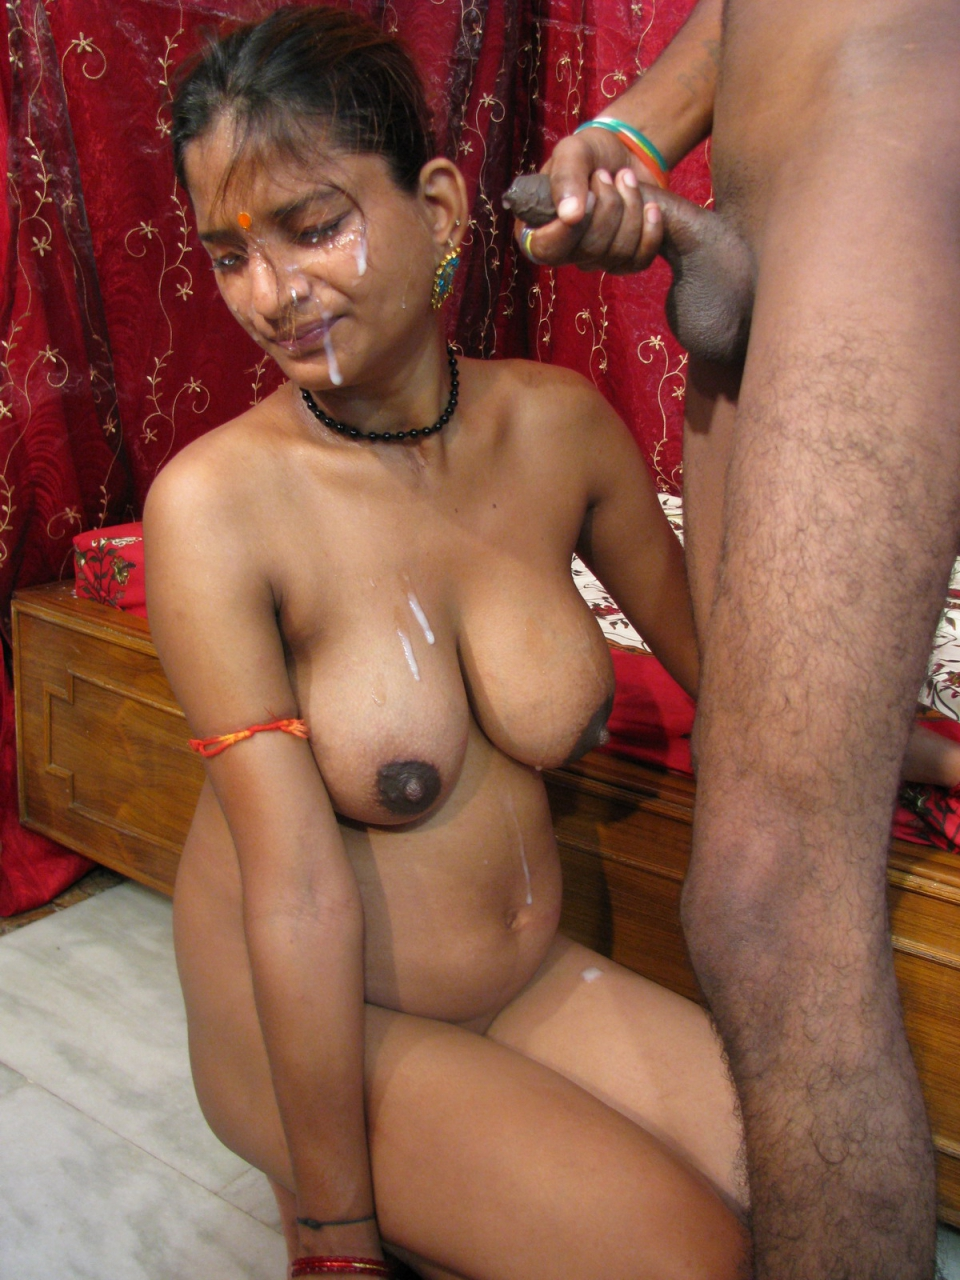 Mumbai girls fuck nake, hot naked europe women